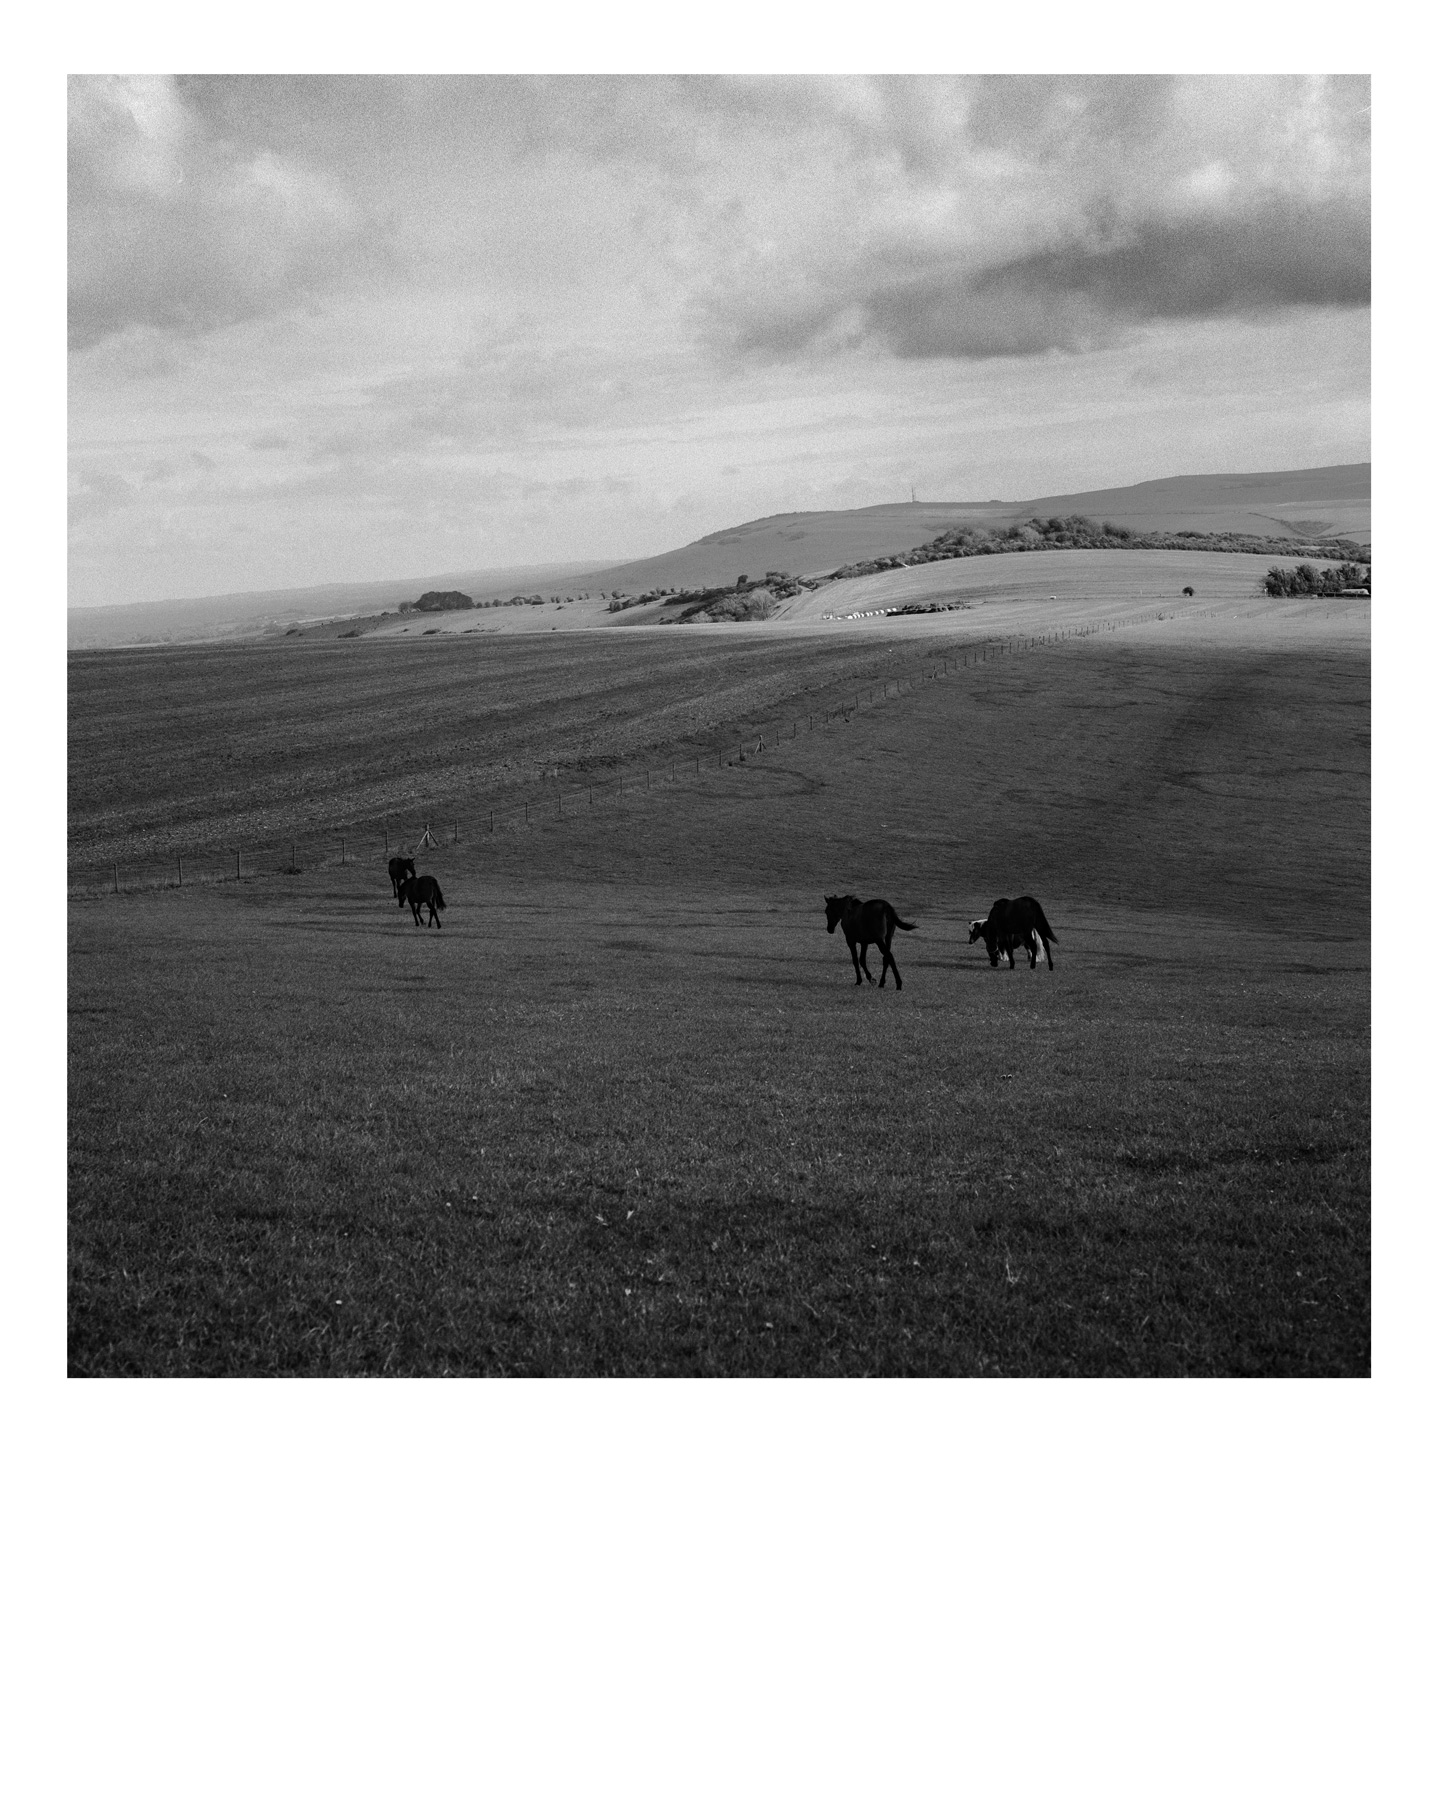 Horses, Image was photographed while on a country walk in Telscombe Village in the South East of England. Part of a wider Observations series. Using a Hasselblad 6x6 camera and Ilford FP4 125iso film, hand developed in Ilfosol 3 chemicals in 2020. Black & White archival print using traditional darkroom chemical process. Using Ilford Multigrade RC Deluxe satin paper. 10x8in print (20.3cm x 25.4cm) Medium weight 190 Limited edition print £100 GBP